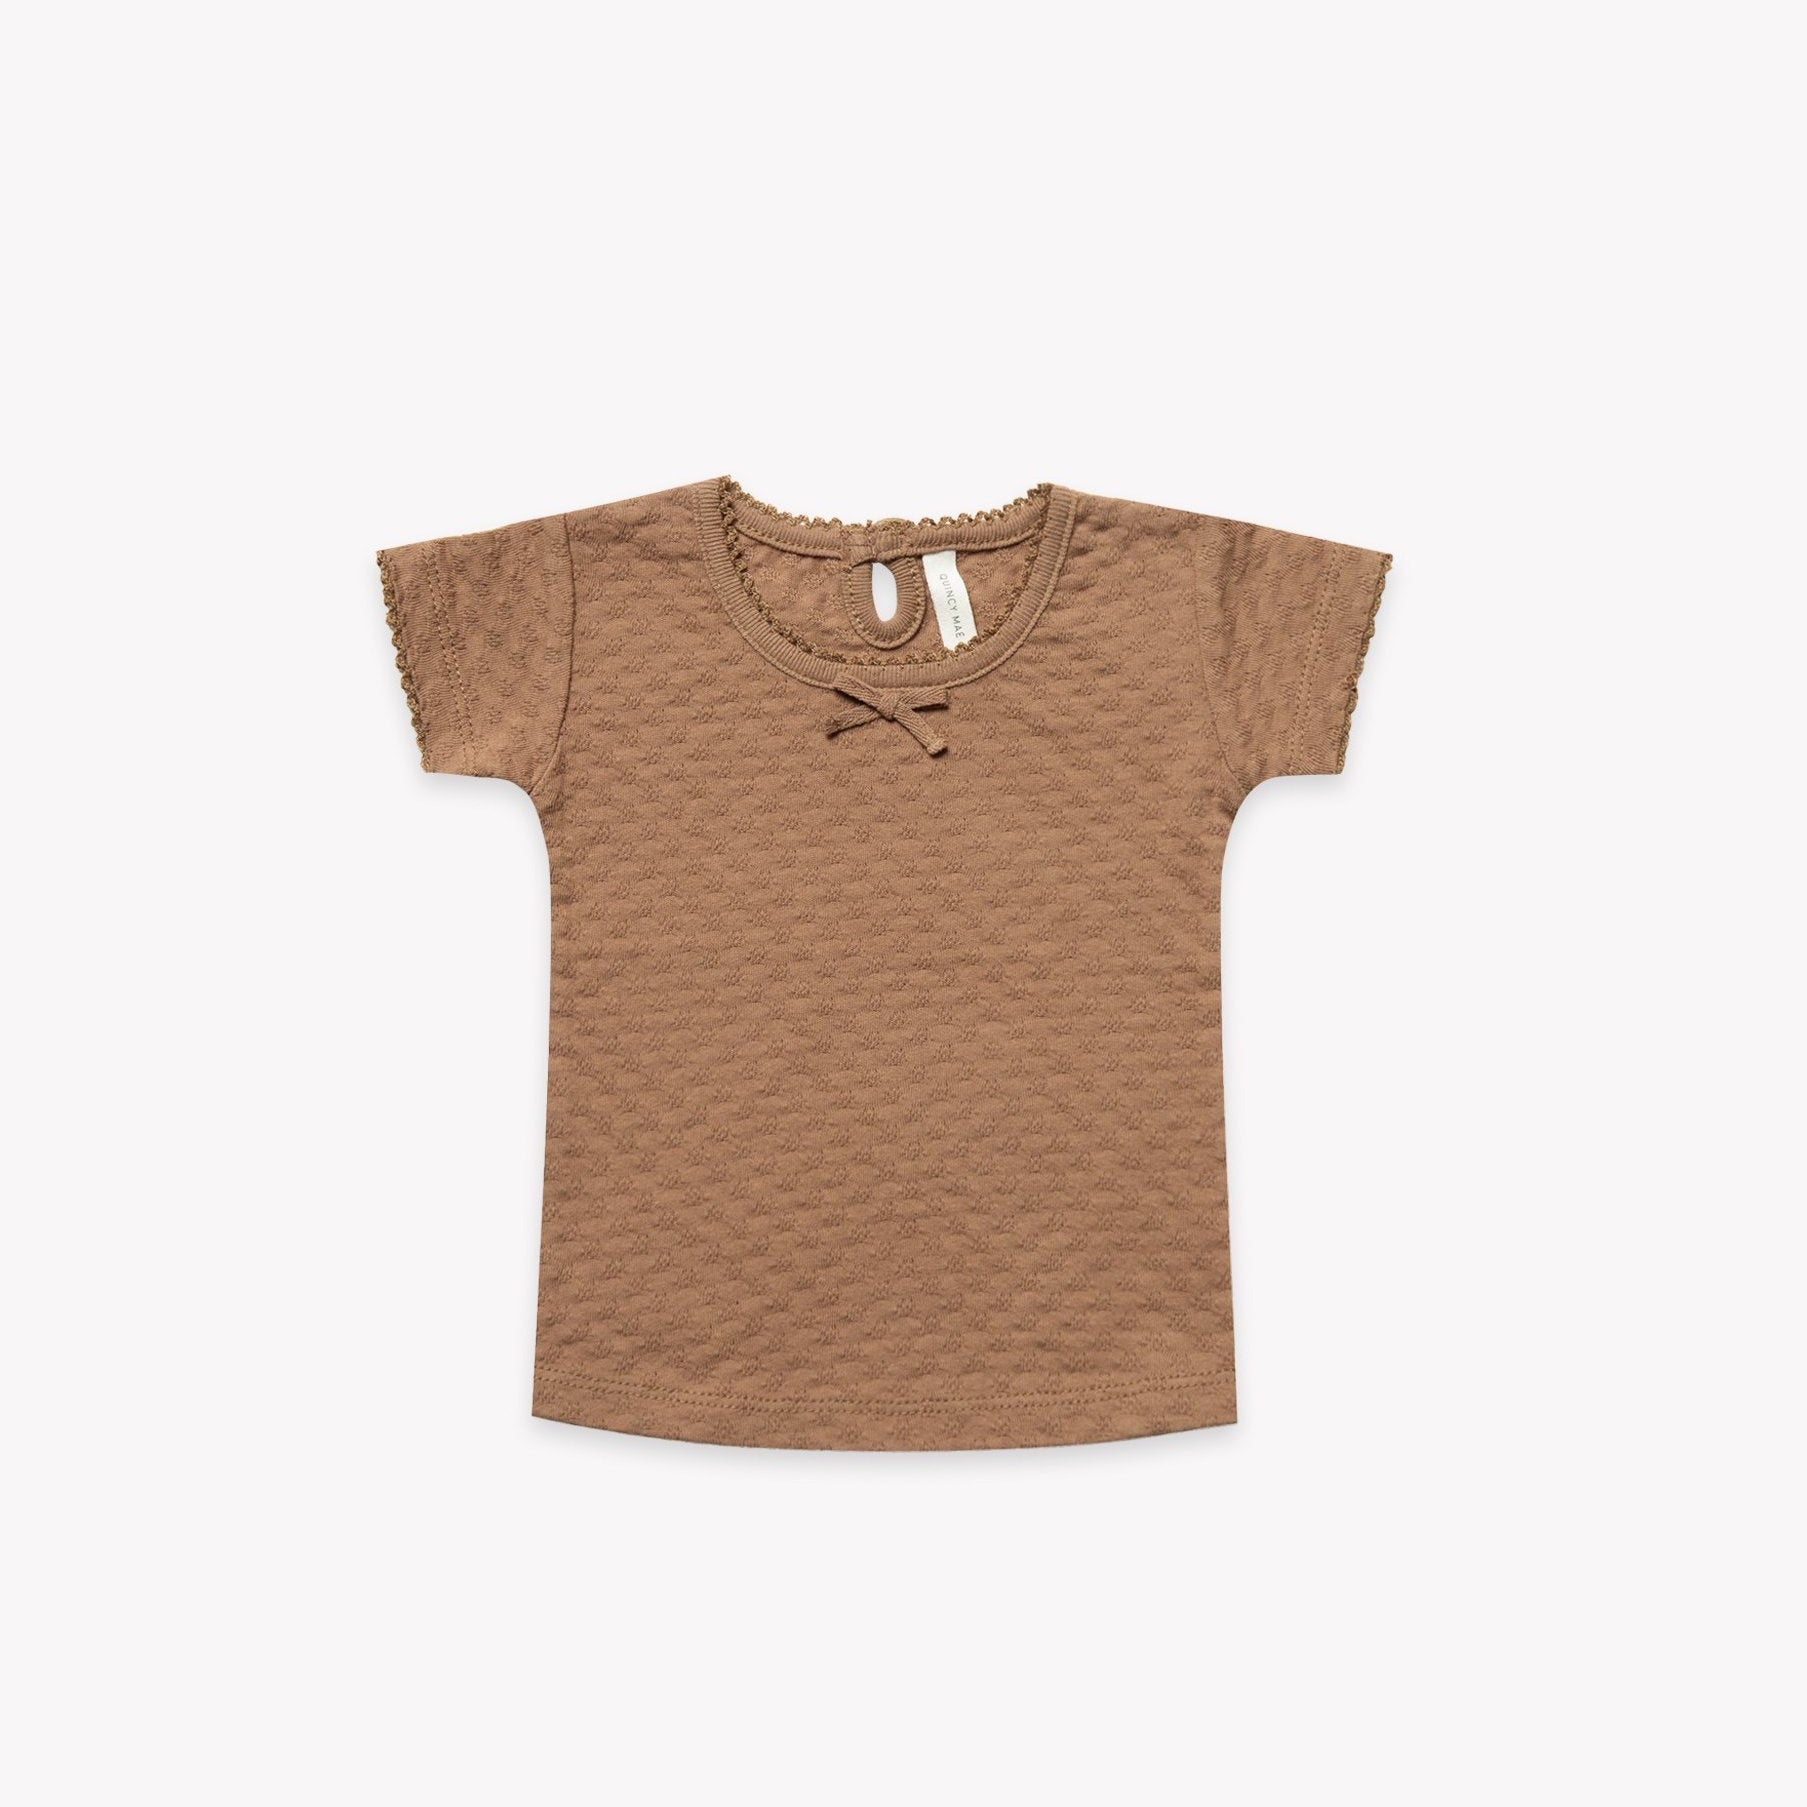 Quincy Mae organic cotton pointelle baby tee - copper